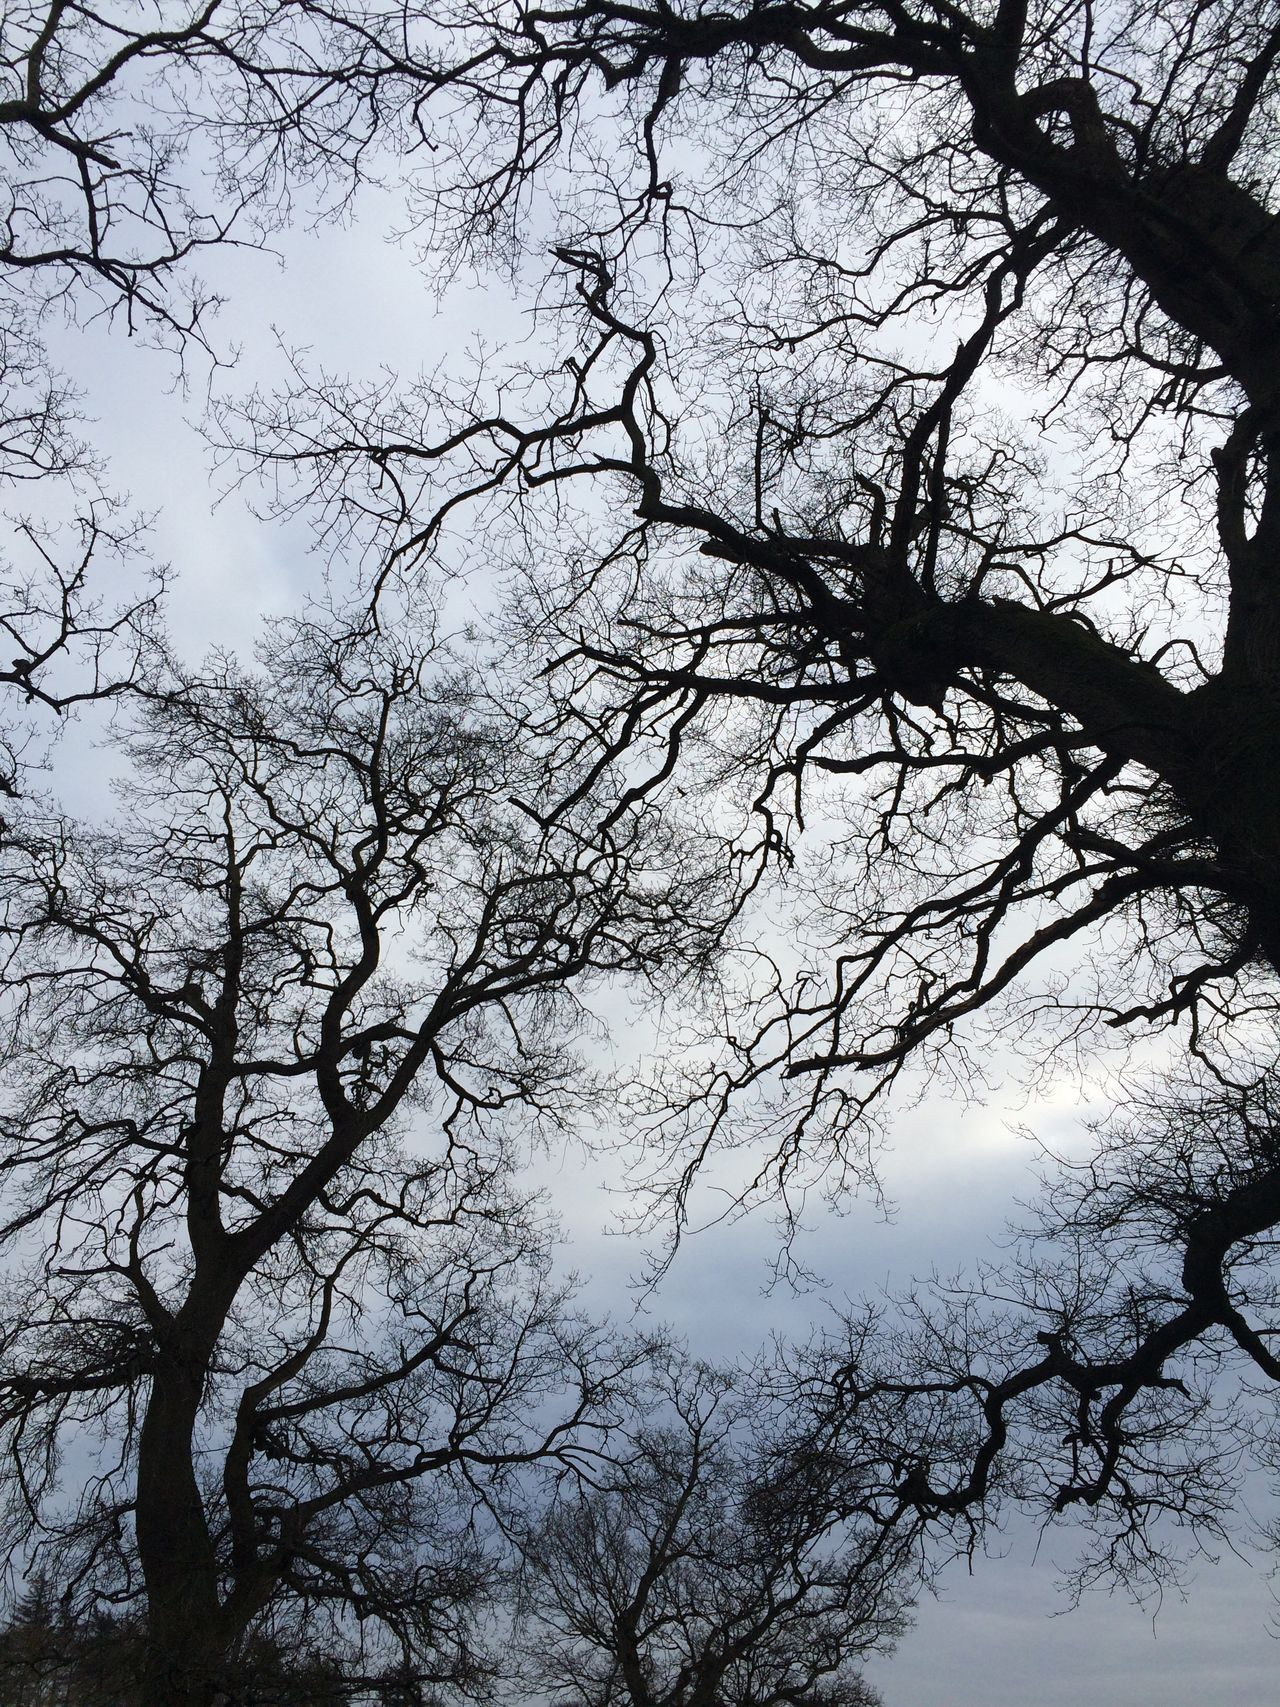 Branches Sky And Trees The Purist (no Edit, No Filter) IPhoneography Beautiful Nature